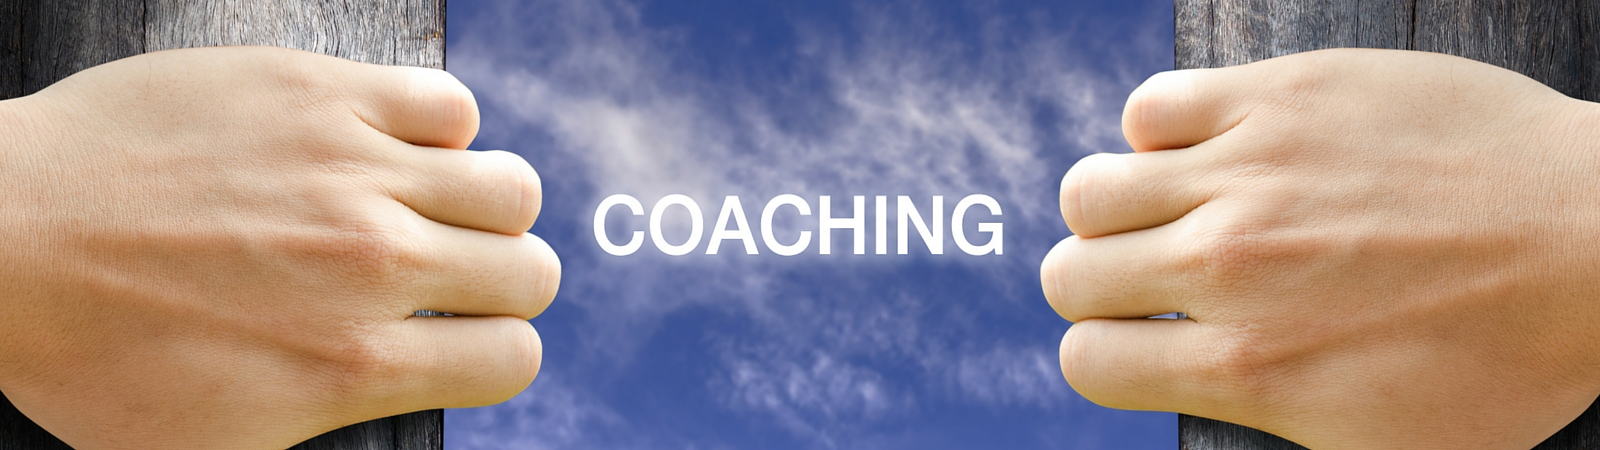 Coaching Packages with BethMcKay.com